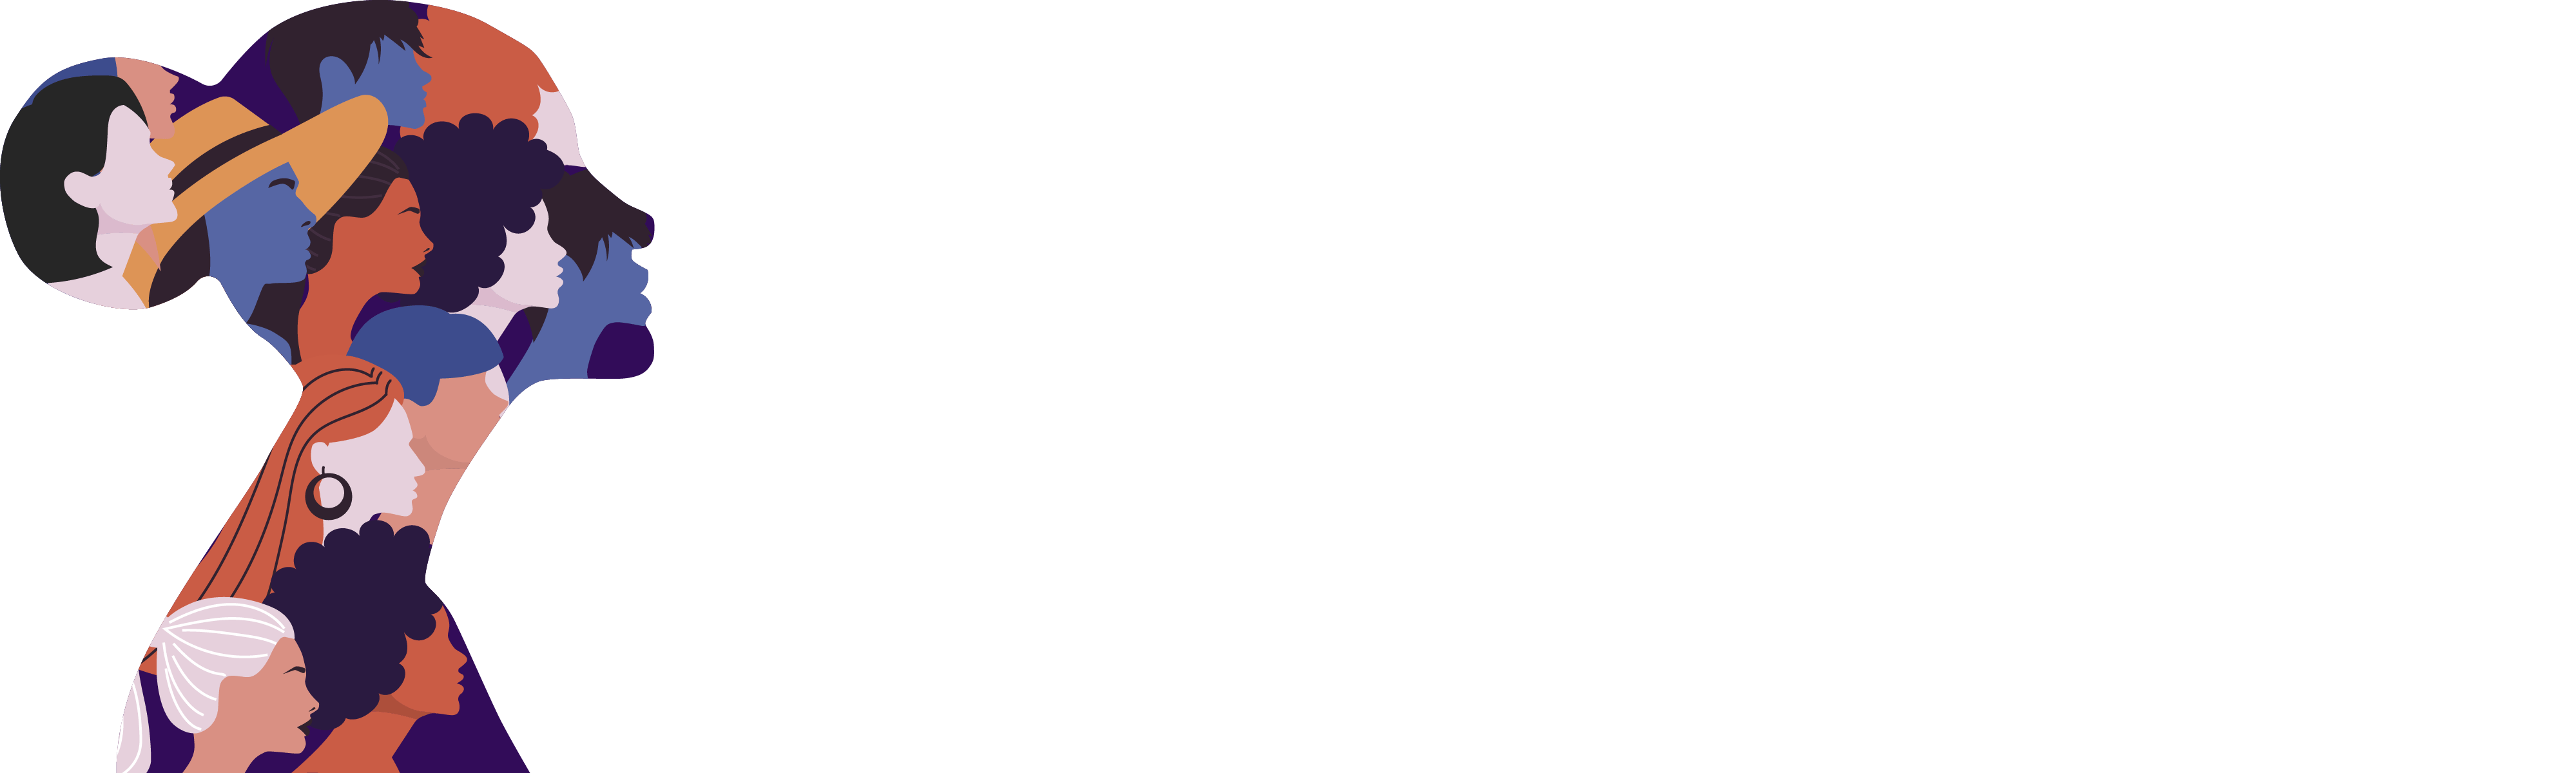 According to the World Health Organization, around 1 in 3 women endure physical or sexual violence from a romantic partner or sexual violence from some person during their lifetime. According to 2018 findings, girls comprised about 20 percent of total trafficking victims and 25 percent of victims trafficked for sexual exploitation.